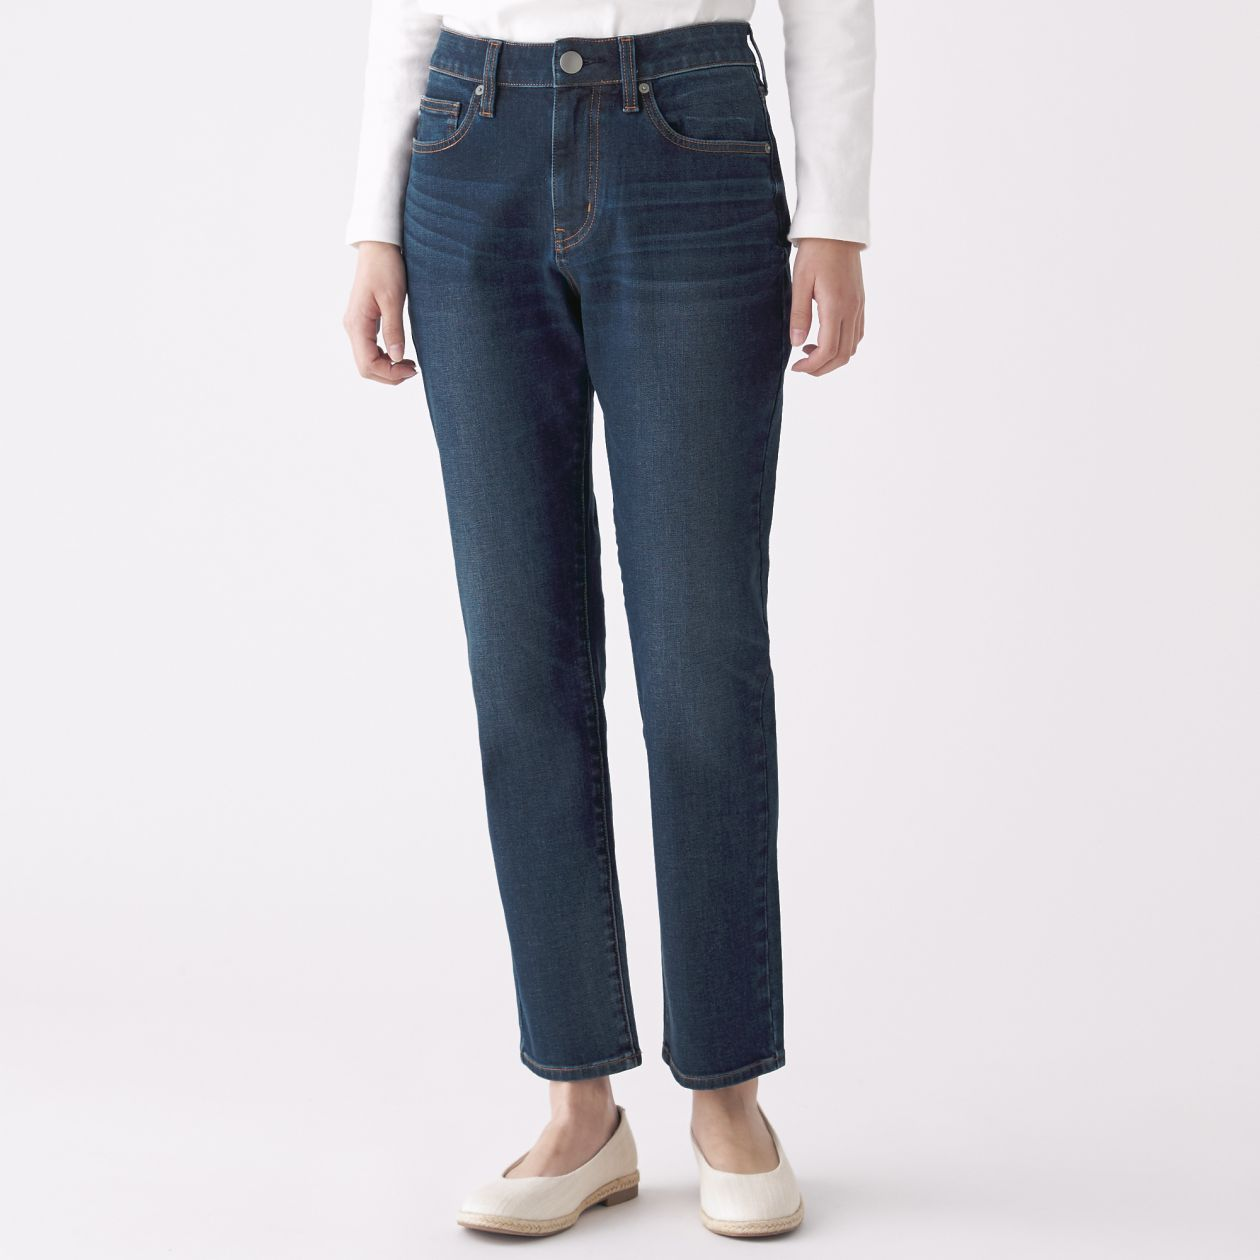 promo codes most reliable big selection of 2019 4 WAY STRETCH DENIM BOY FIT ANKLE LENGTH | MUJI